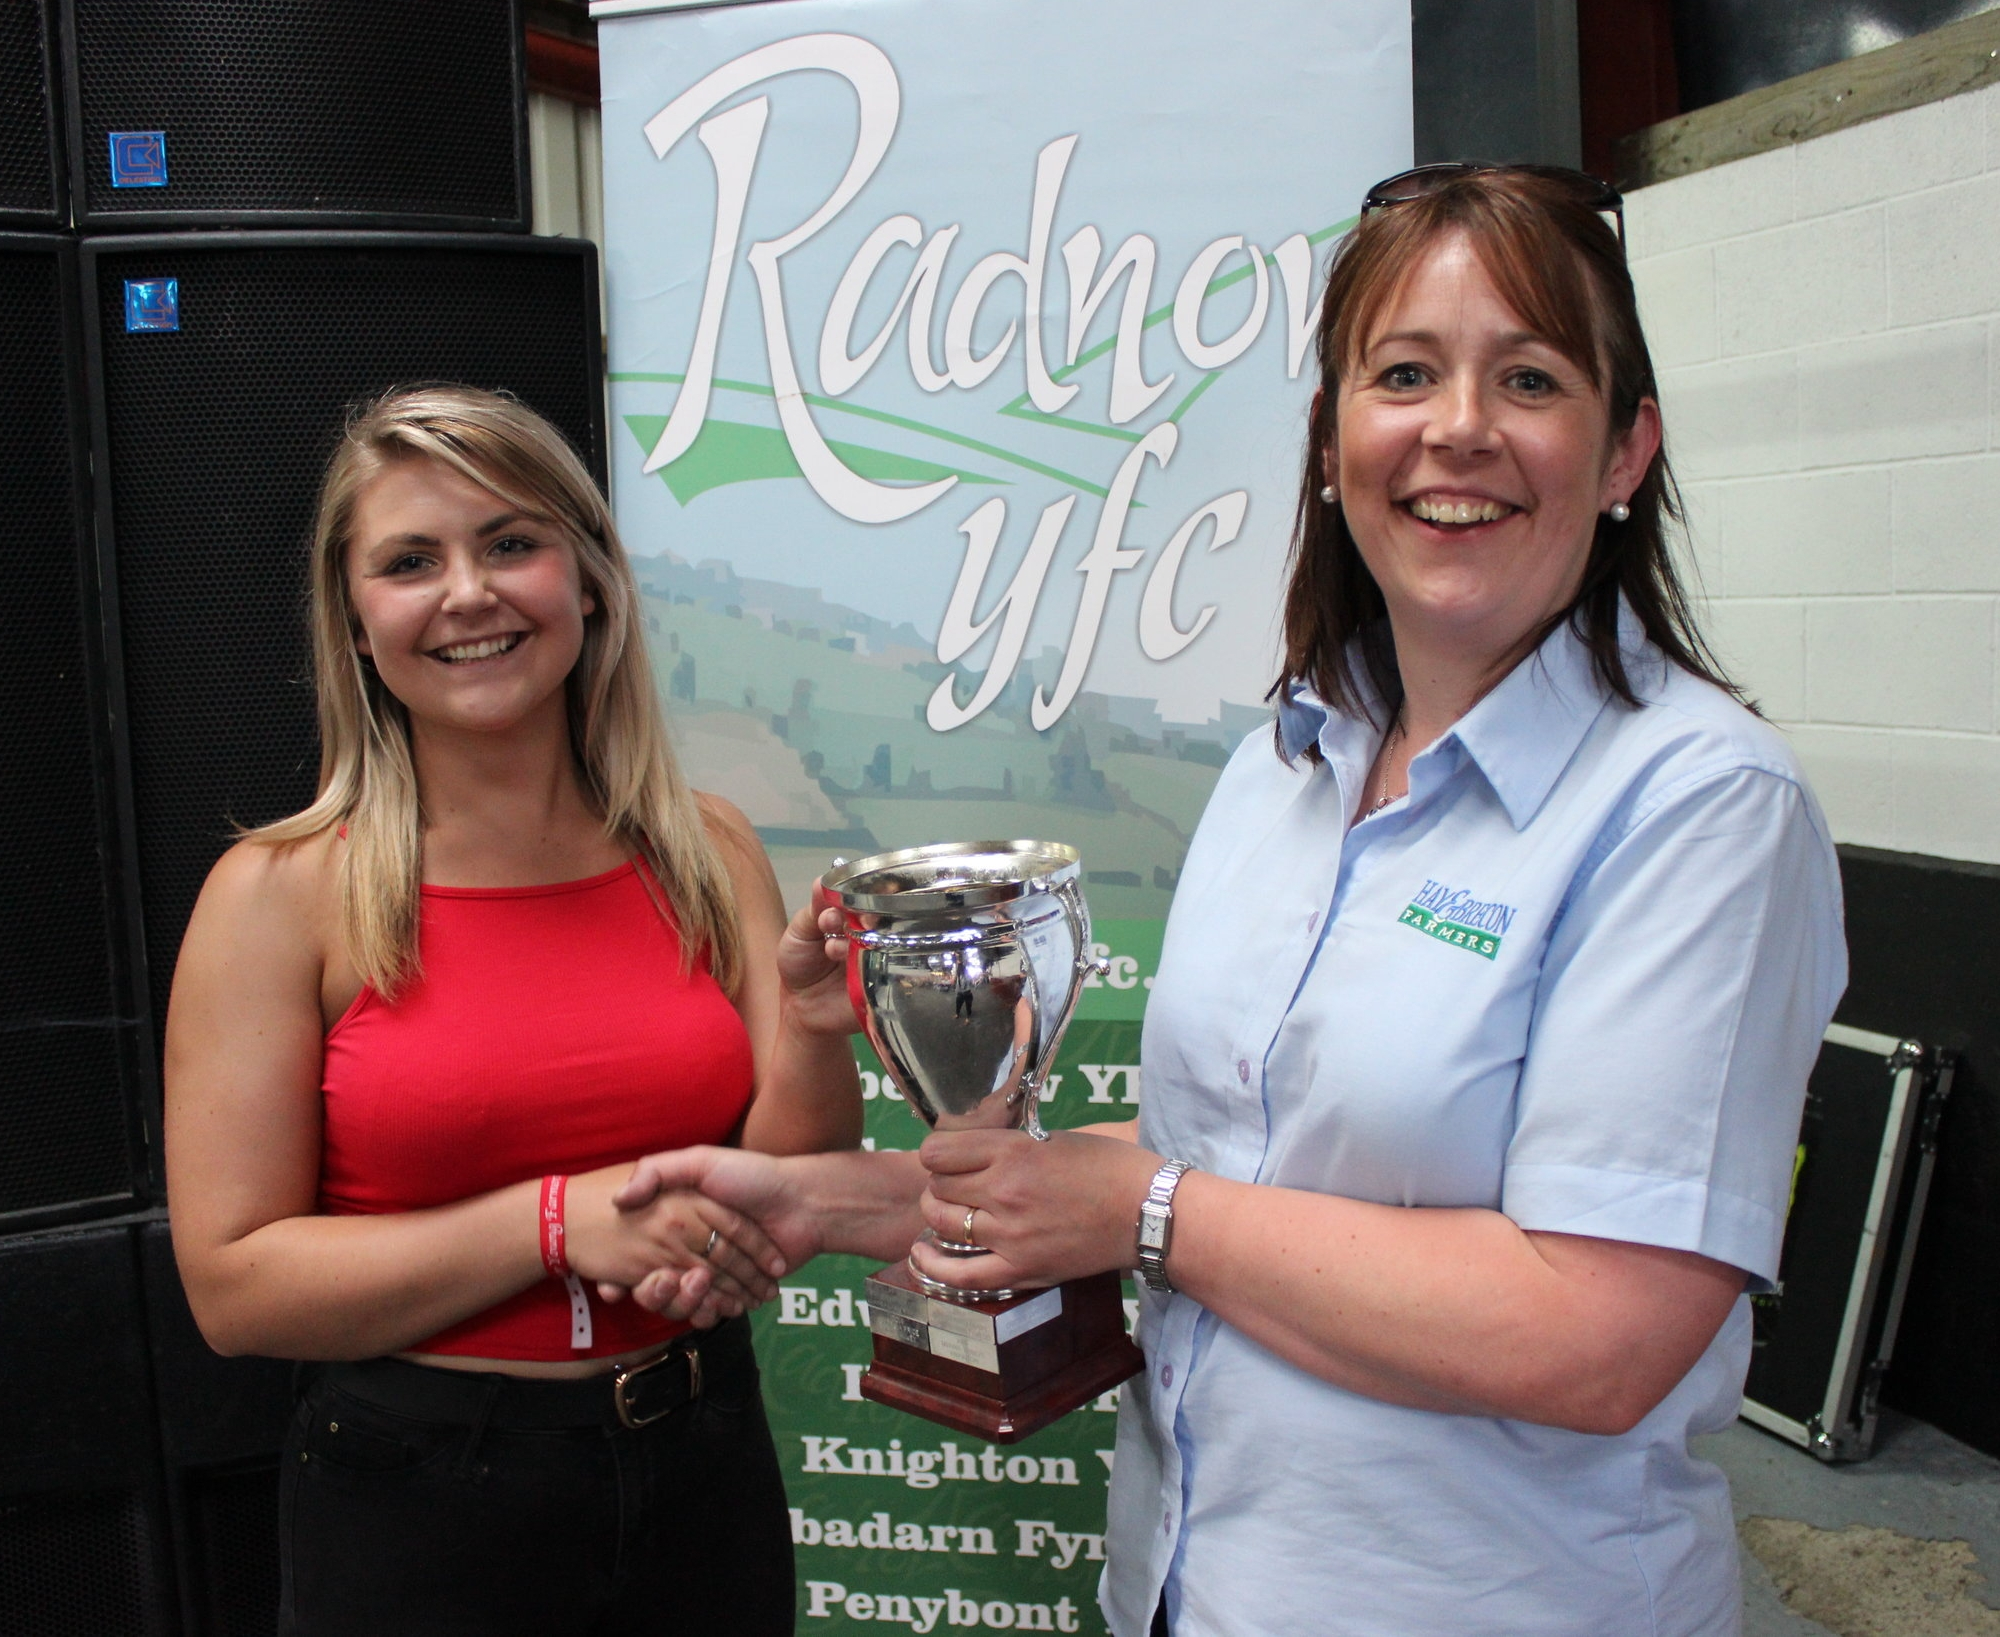 Katie Fairclough, Llanbadarn Fynydd YFC - Andrew & Janet Abberley Cup / Top of the Pops Solo Competition